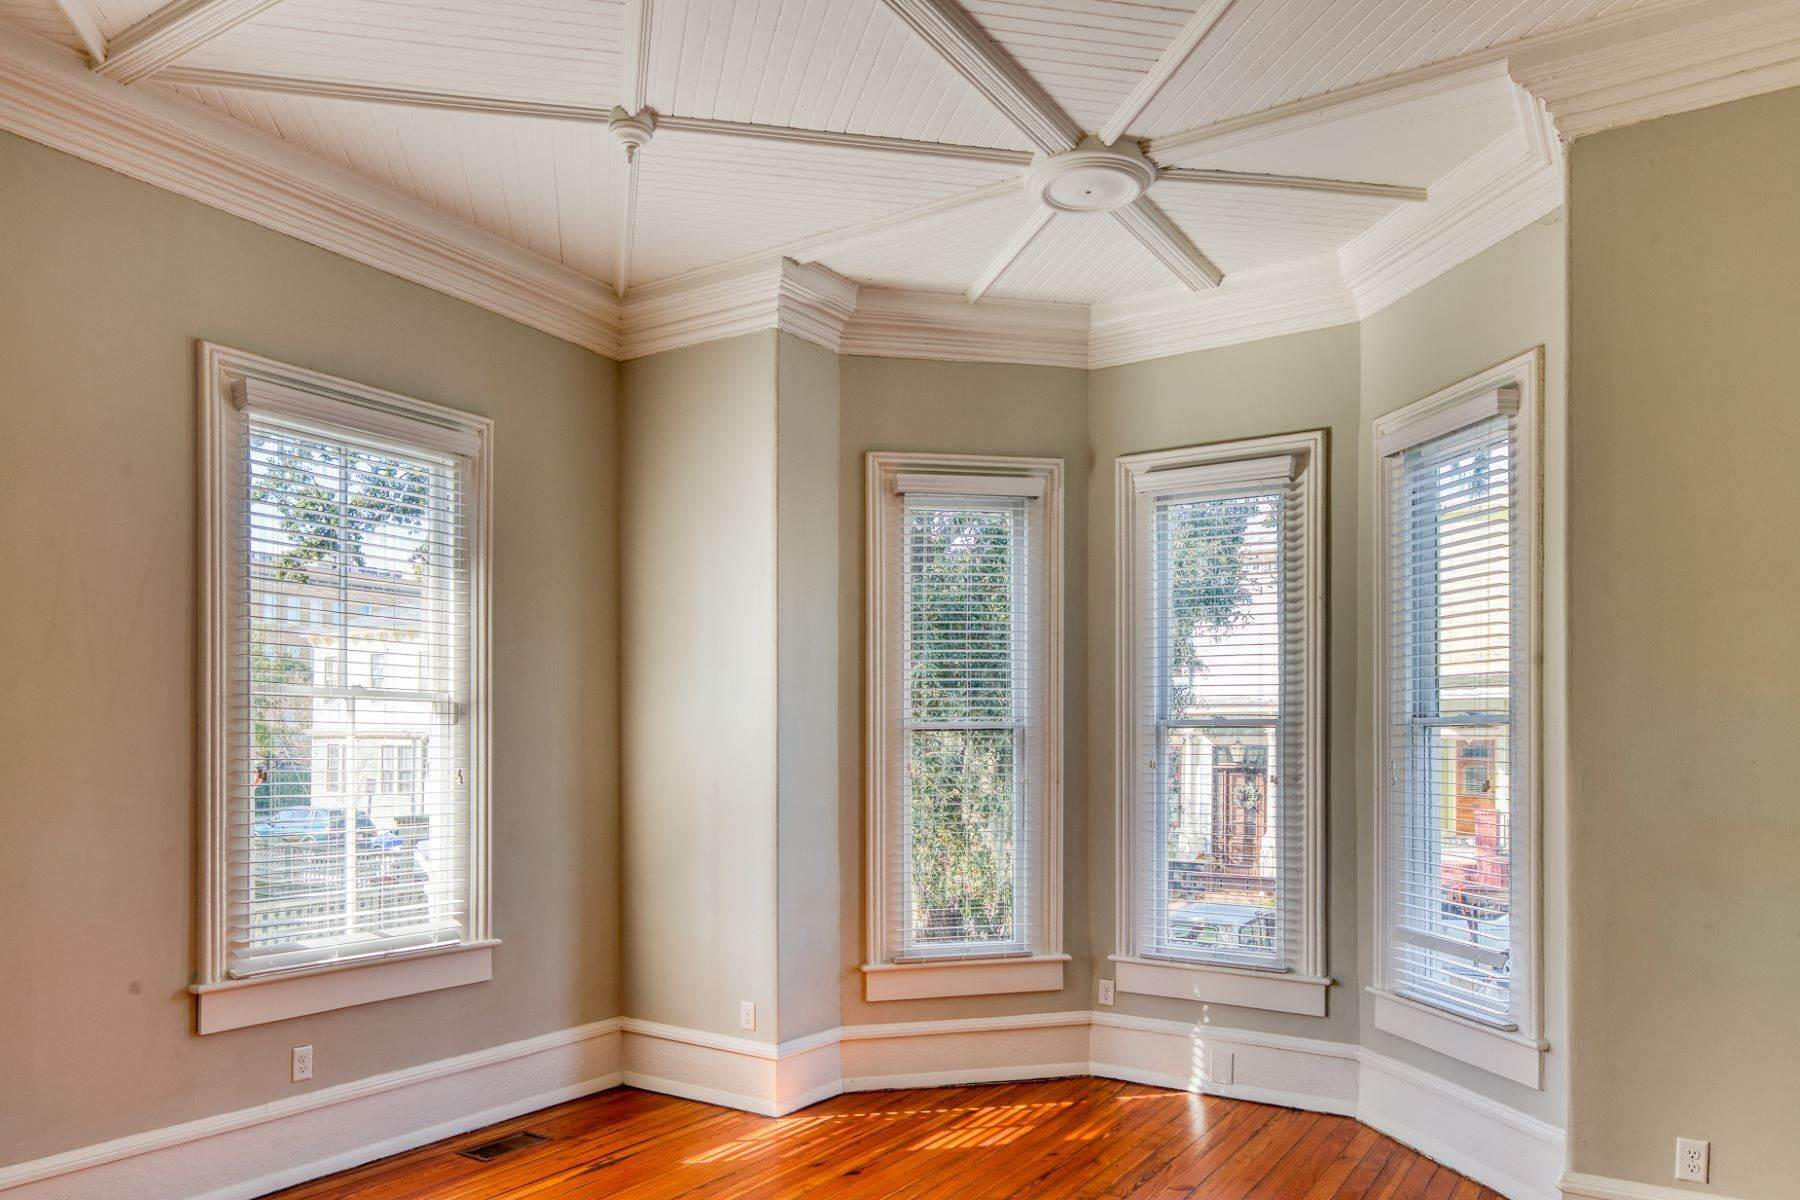 8. Property for Sale at Stunning Six Unit Victorian Apartment Building Near Forsyth Park 109 E Duffy Street Savannah, Georgia 31401 United States